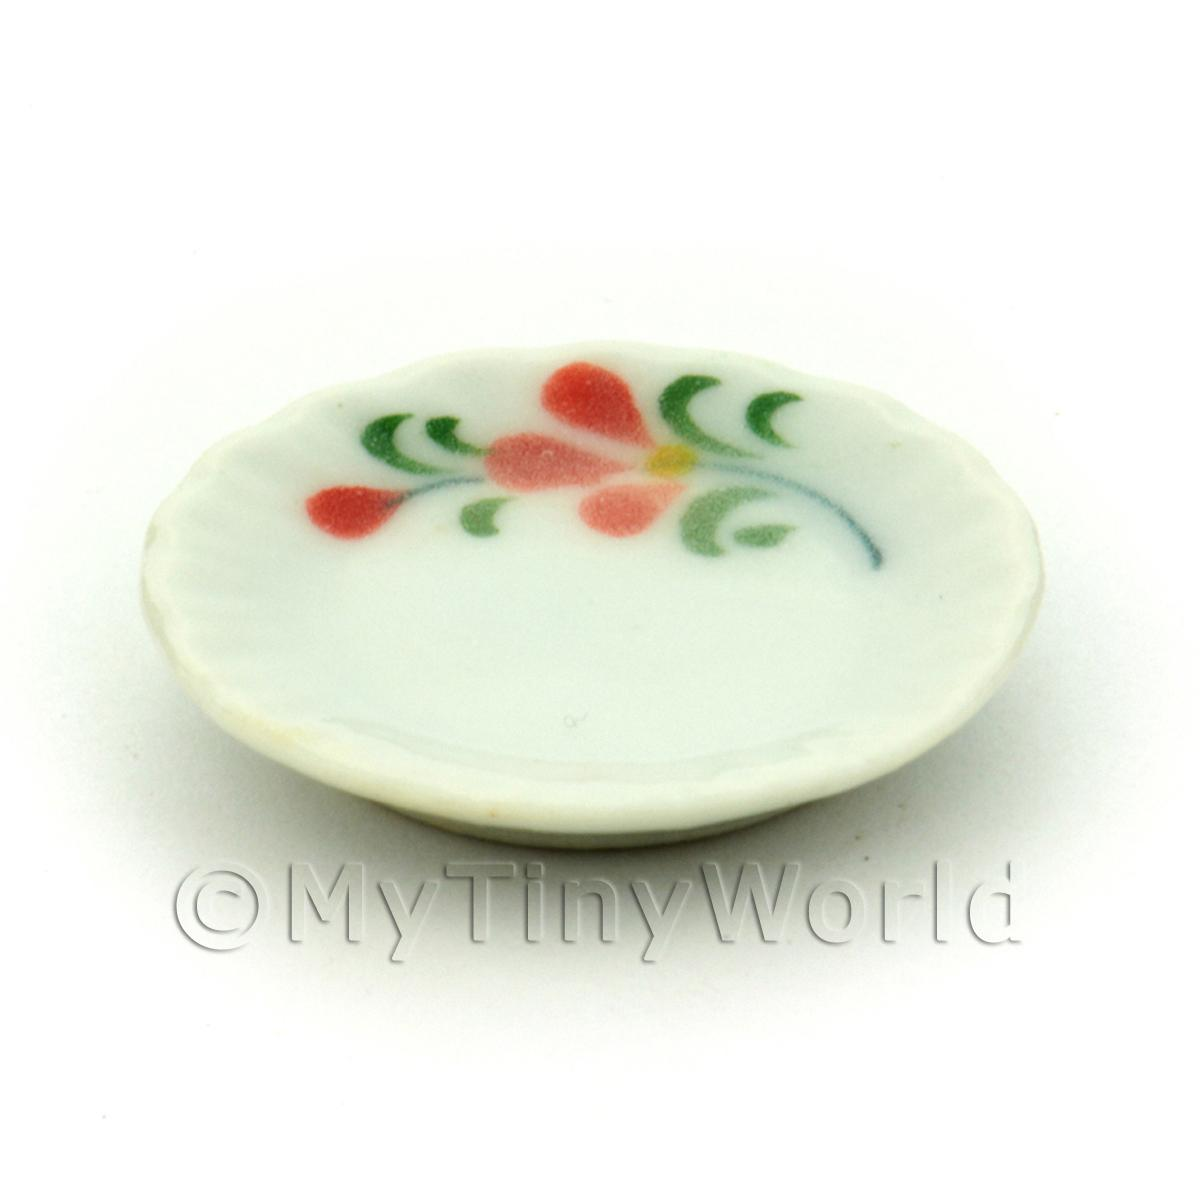 Dolls House Miniature Red Orchid Design 25mm Ceramic Plate